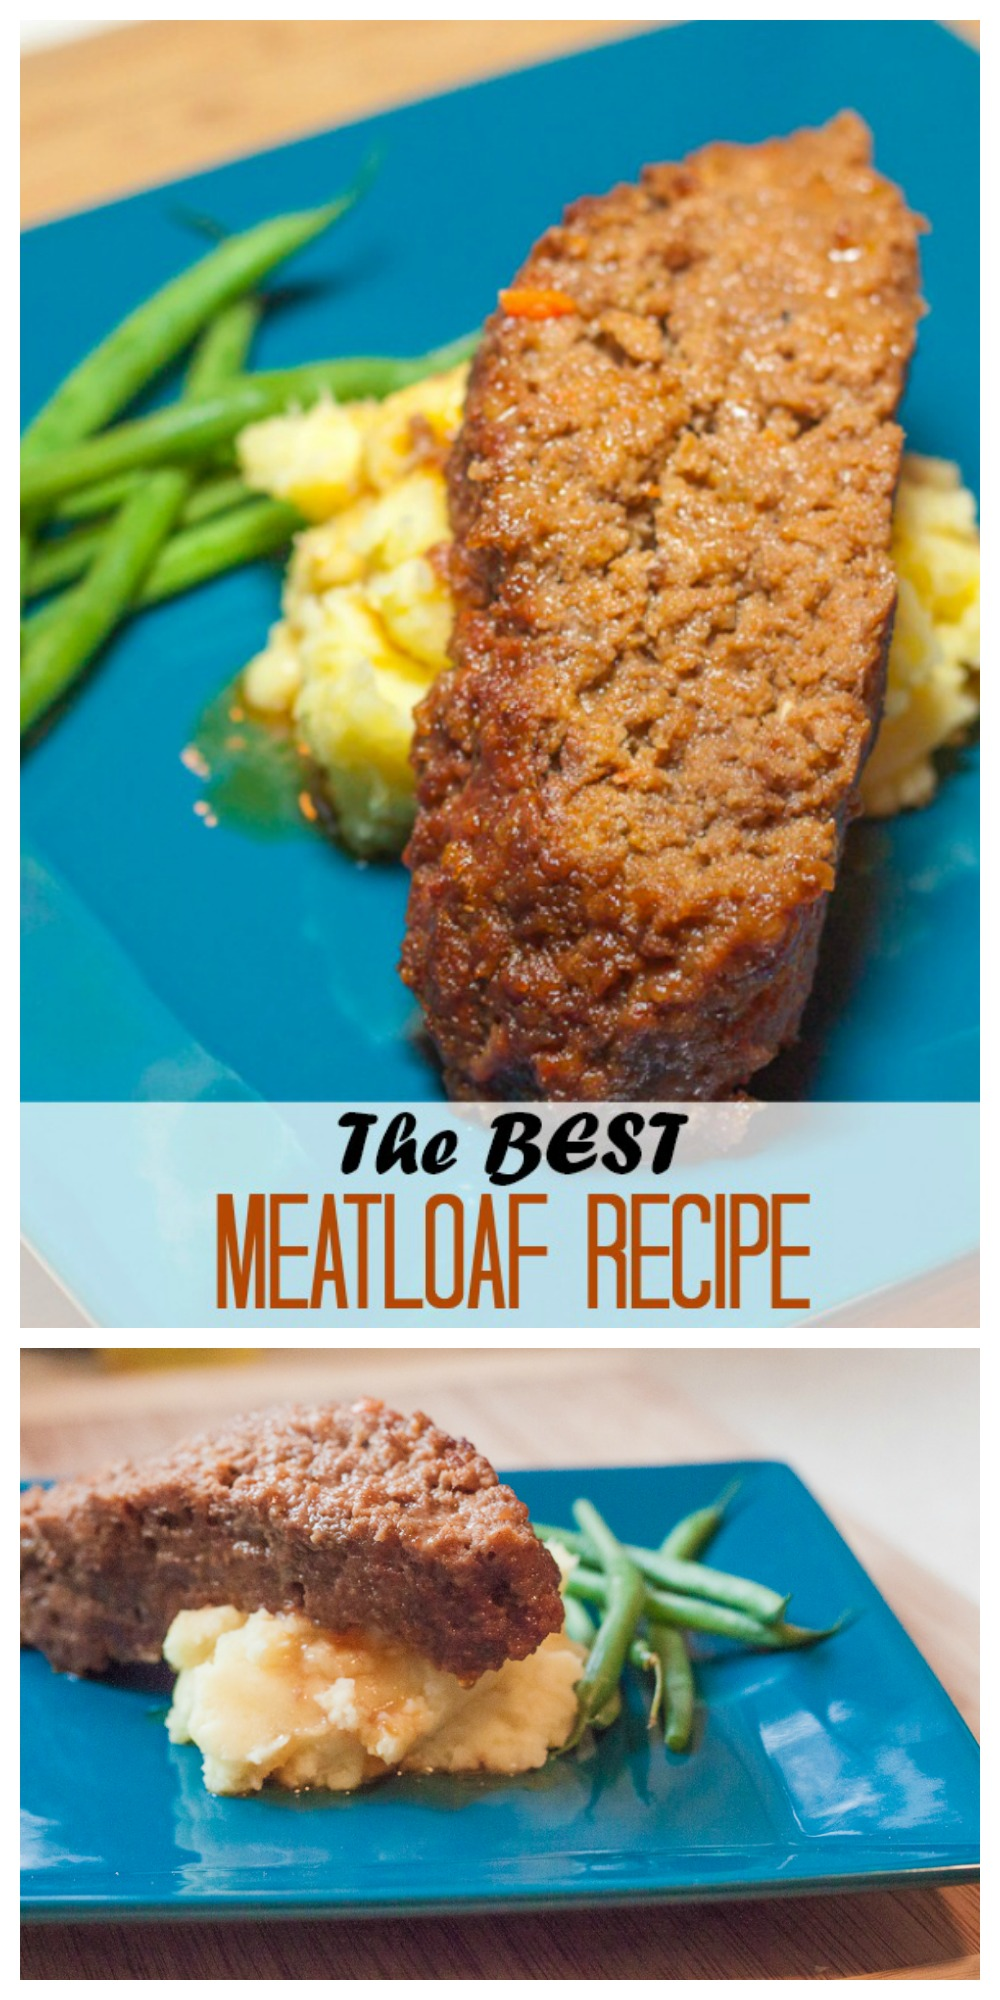 Moist, juicy, delicious meatloaf with some surprising sauce ingredients that might just make you reconsider your opinion of meatloaf in general!